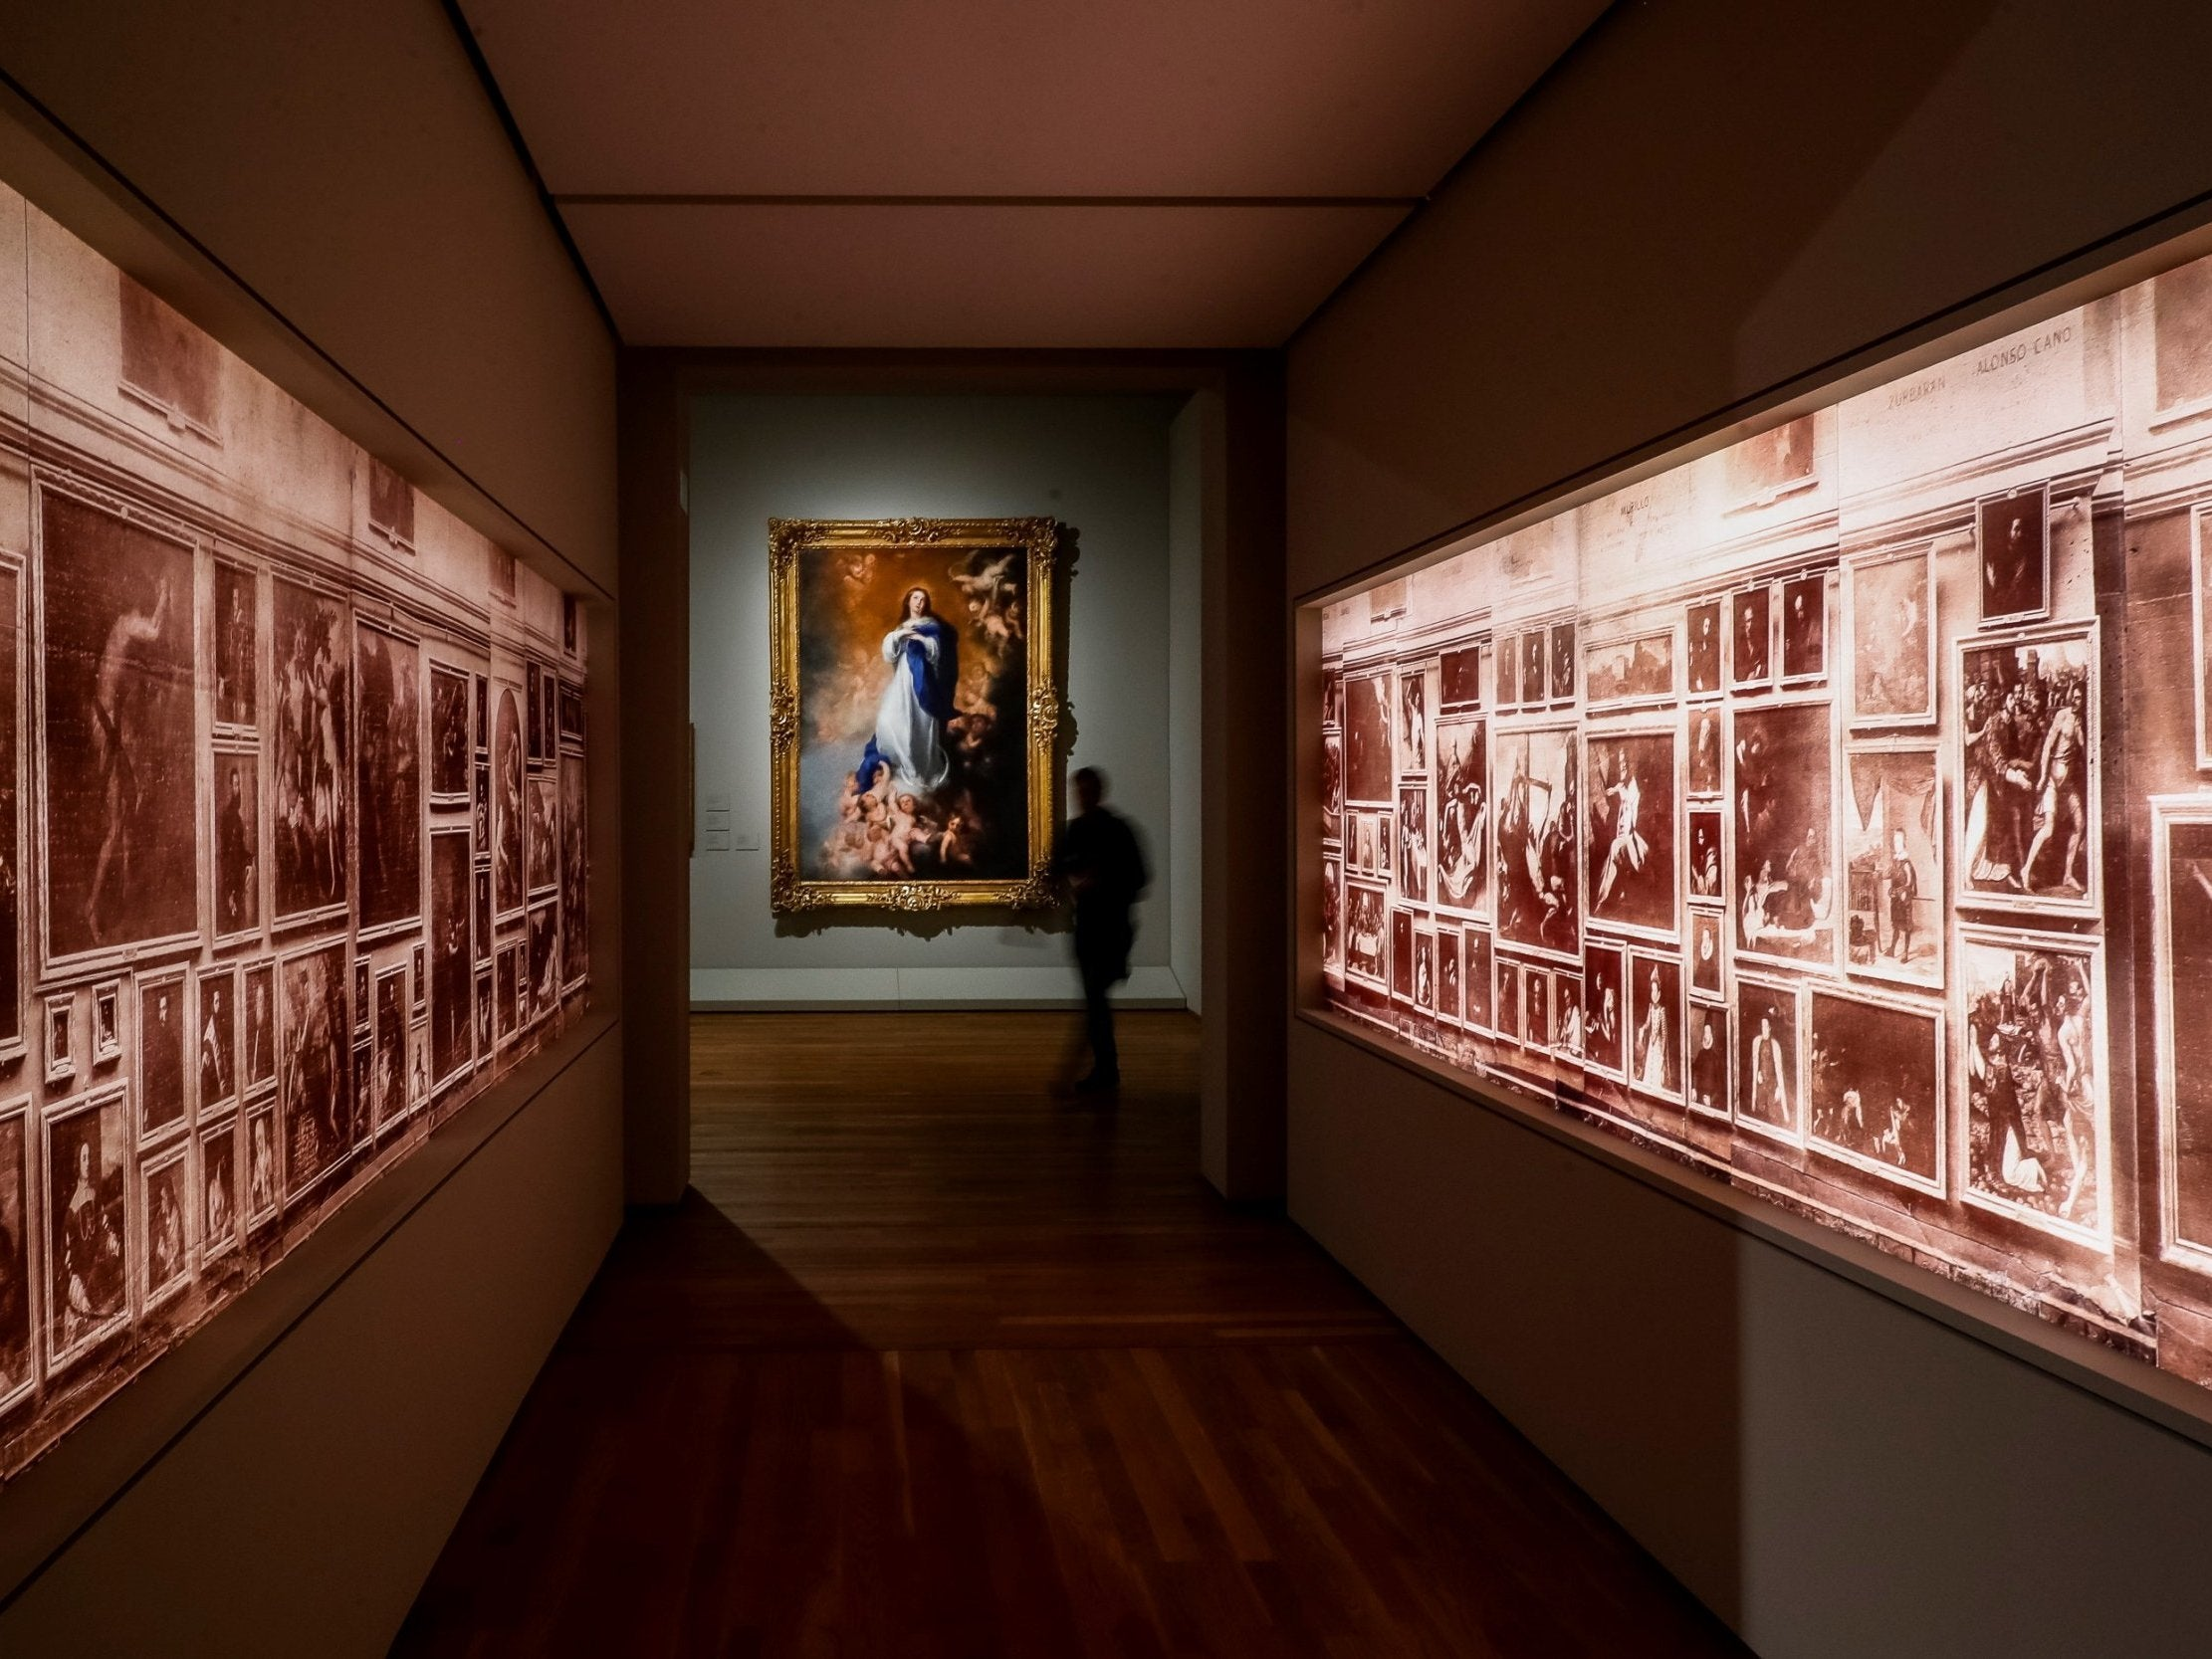 The Prado Museum turns 200 with a celebration of Spain's turbulent past